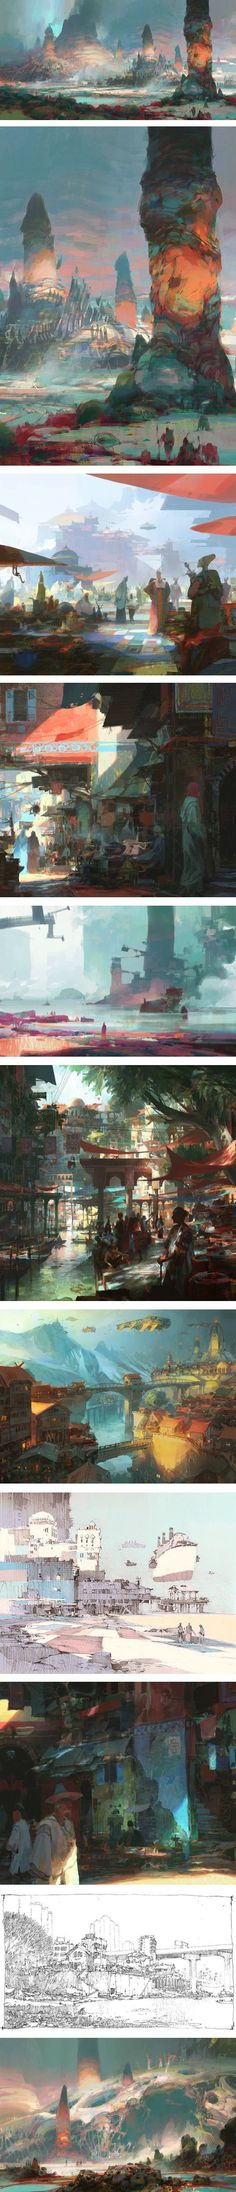 Concept art by Theo Prins